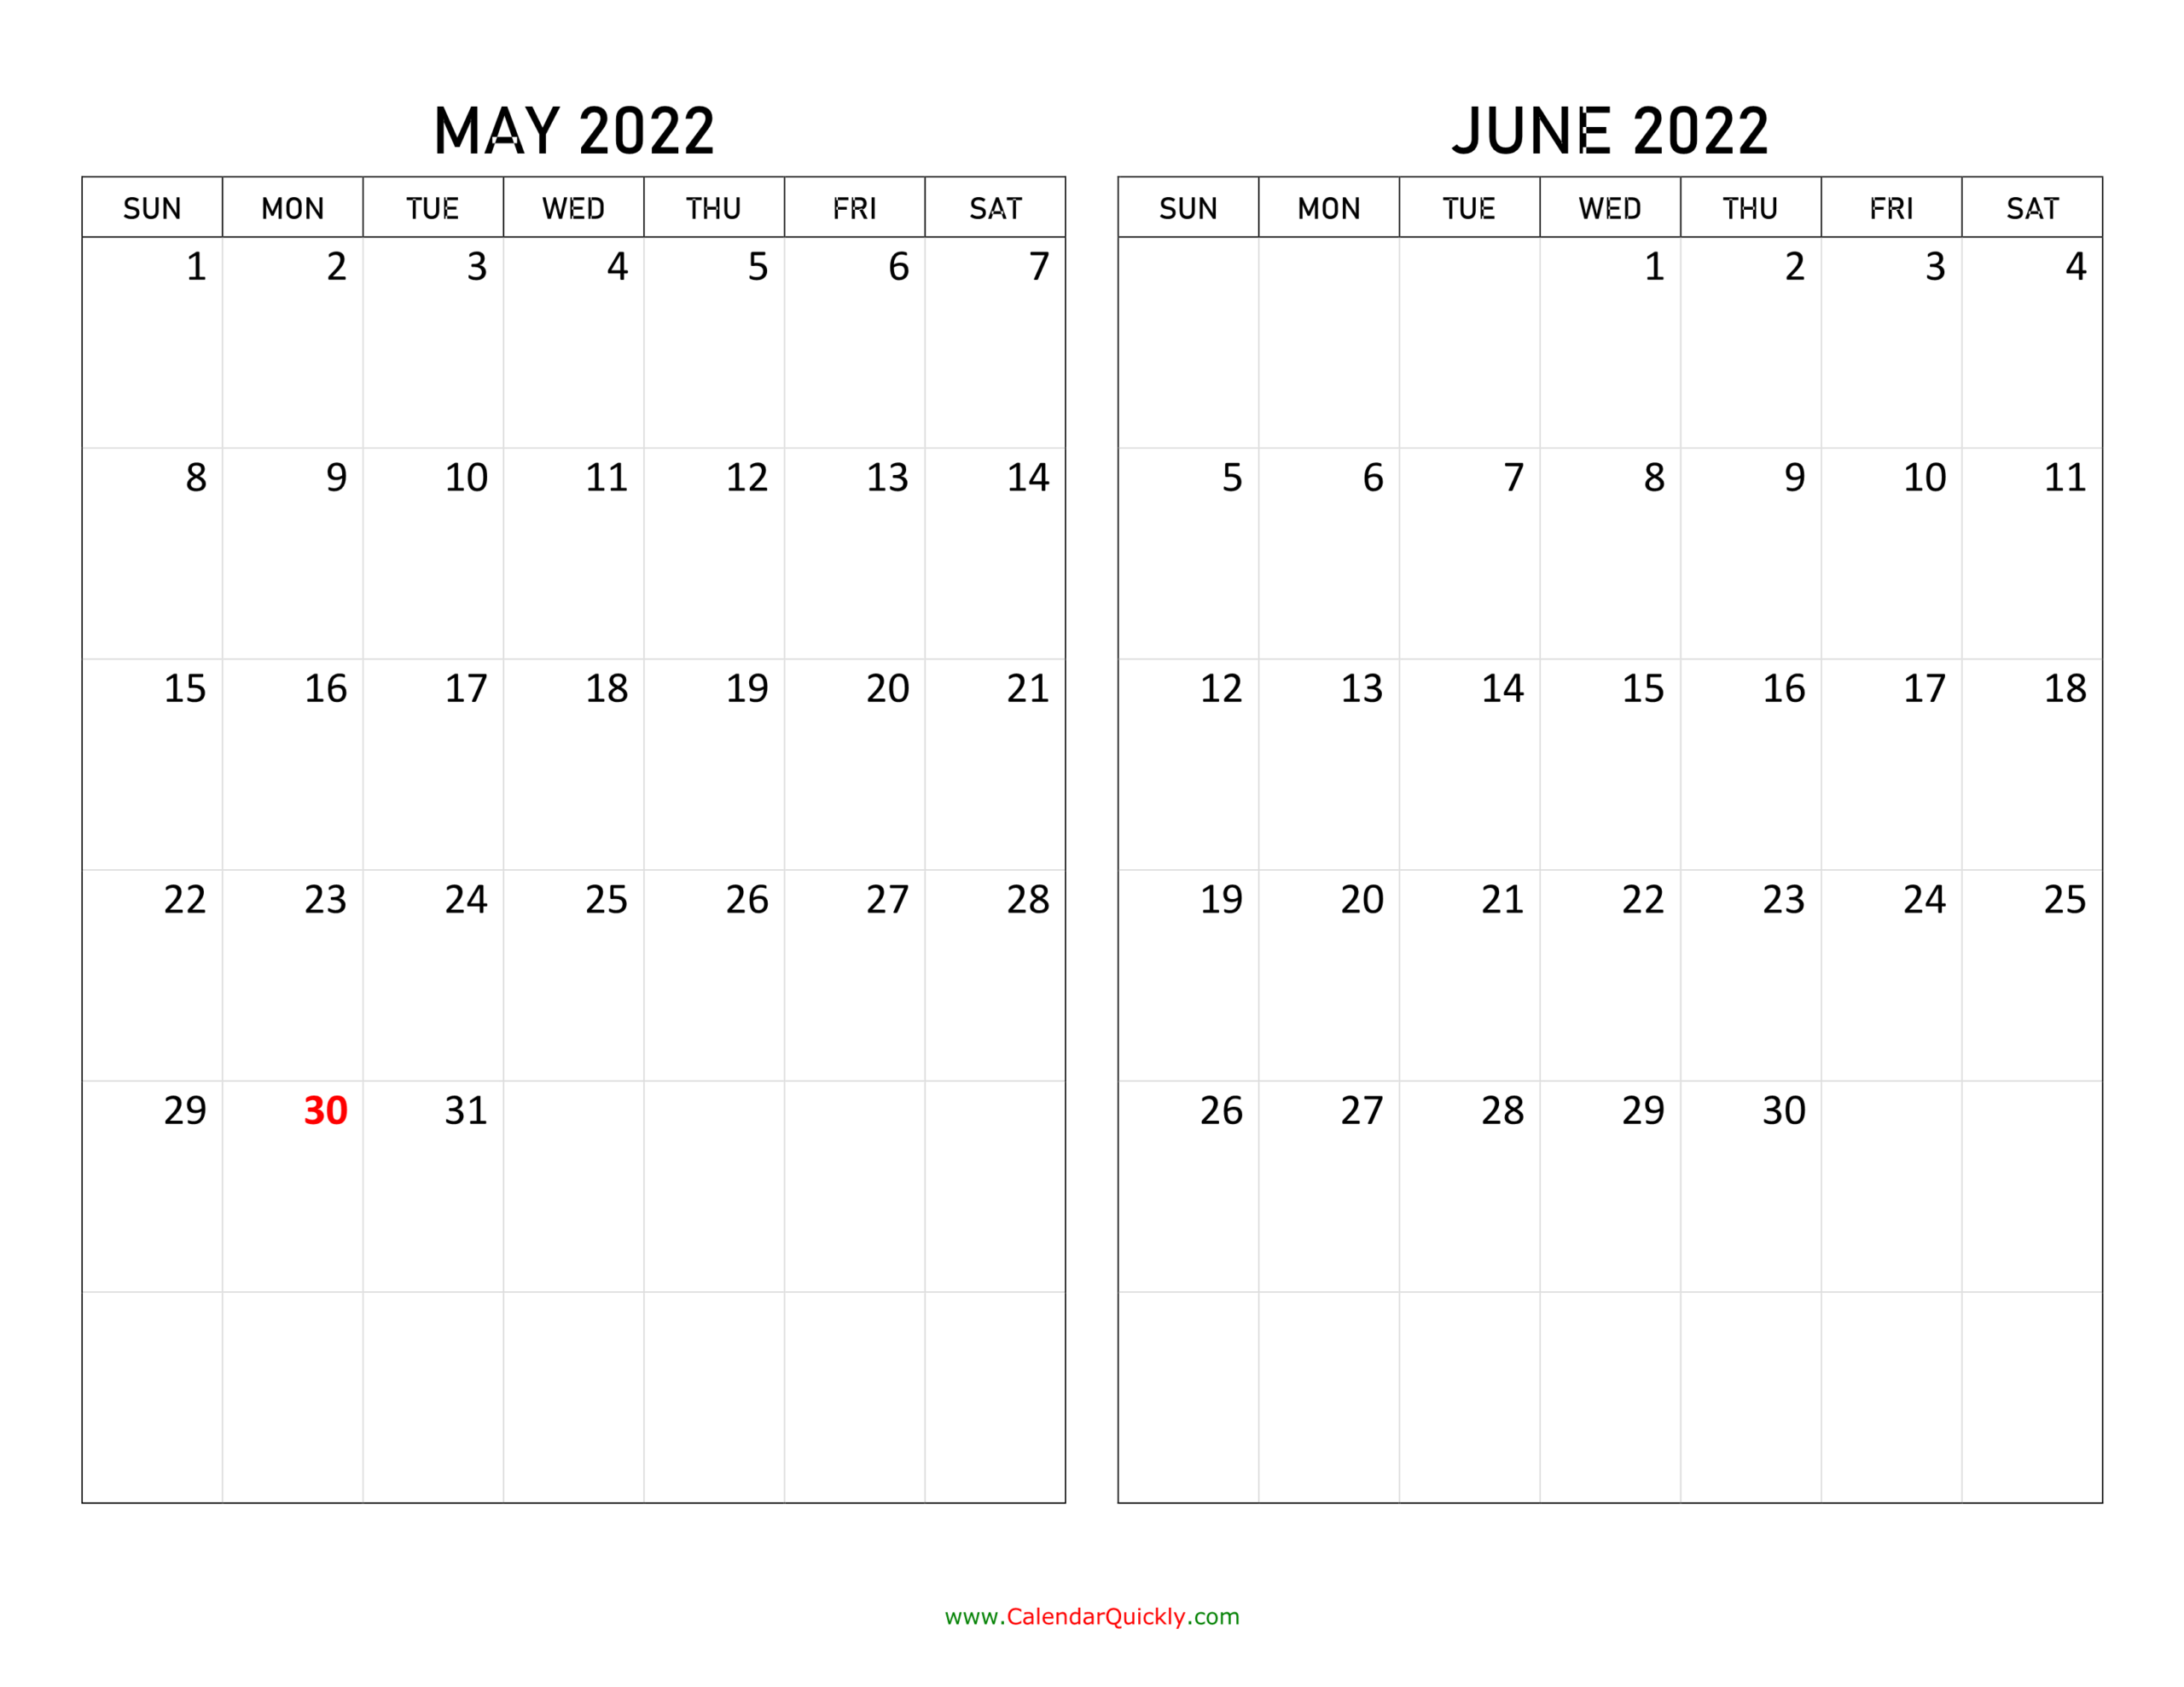 May And June 2022 Calendar | Calendar Quickly intended for May 2022 Calendar Template Image